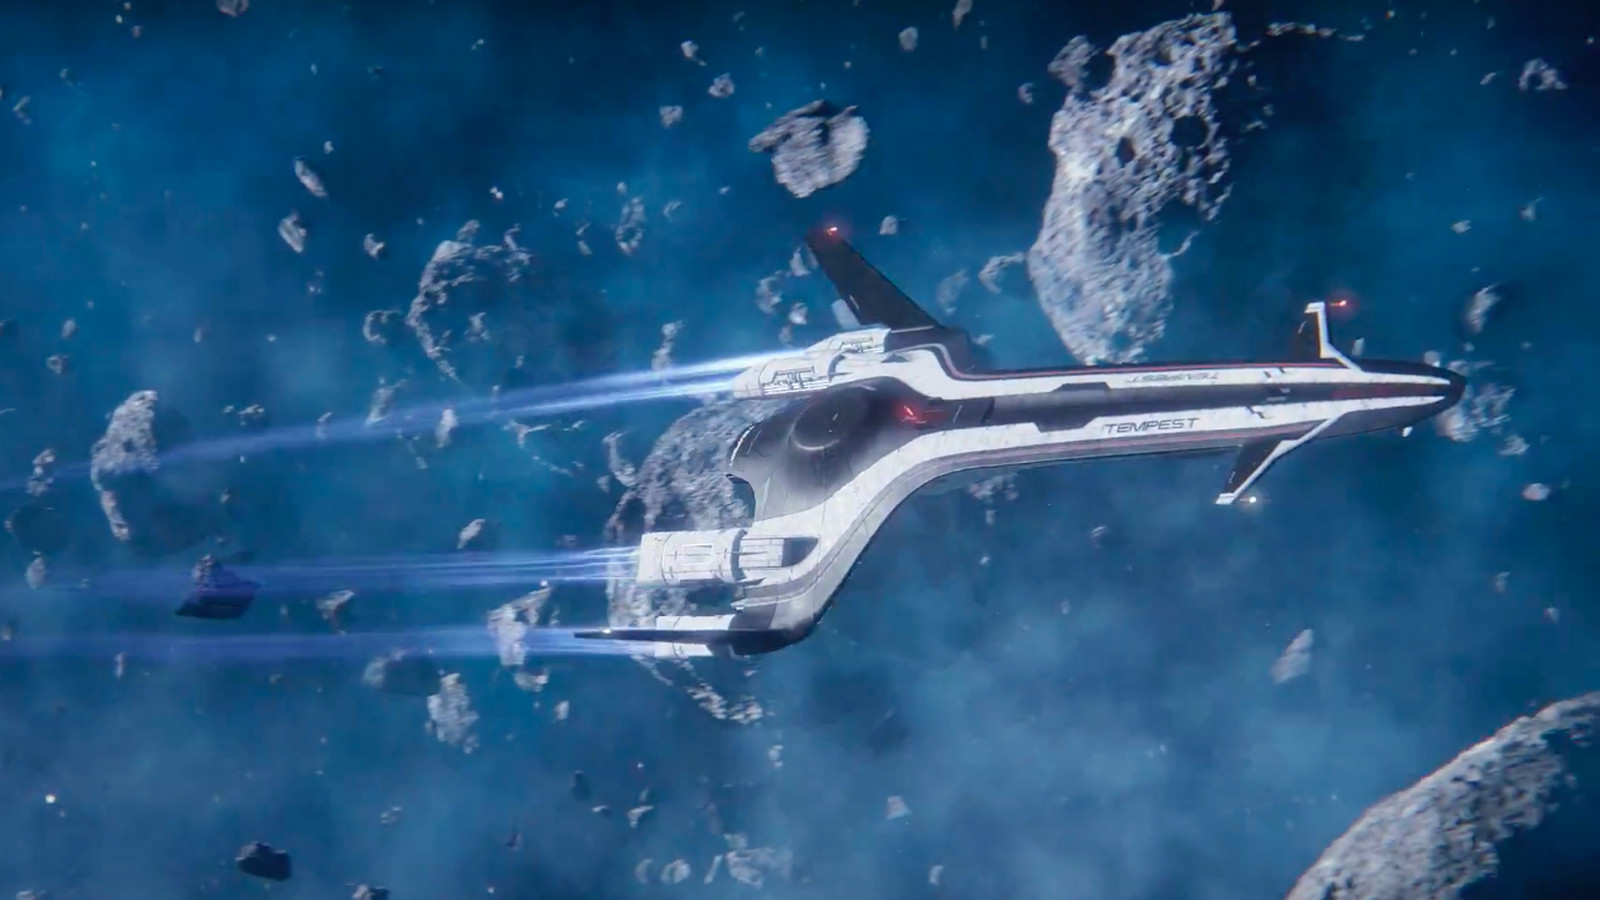 We Mass Effect Andromeda The Tempest 204122 Hd Wallpaper